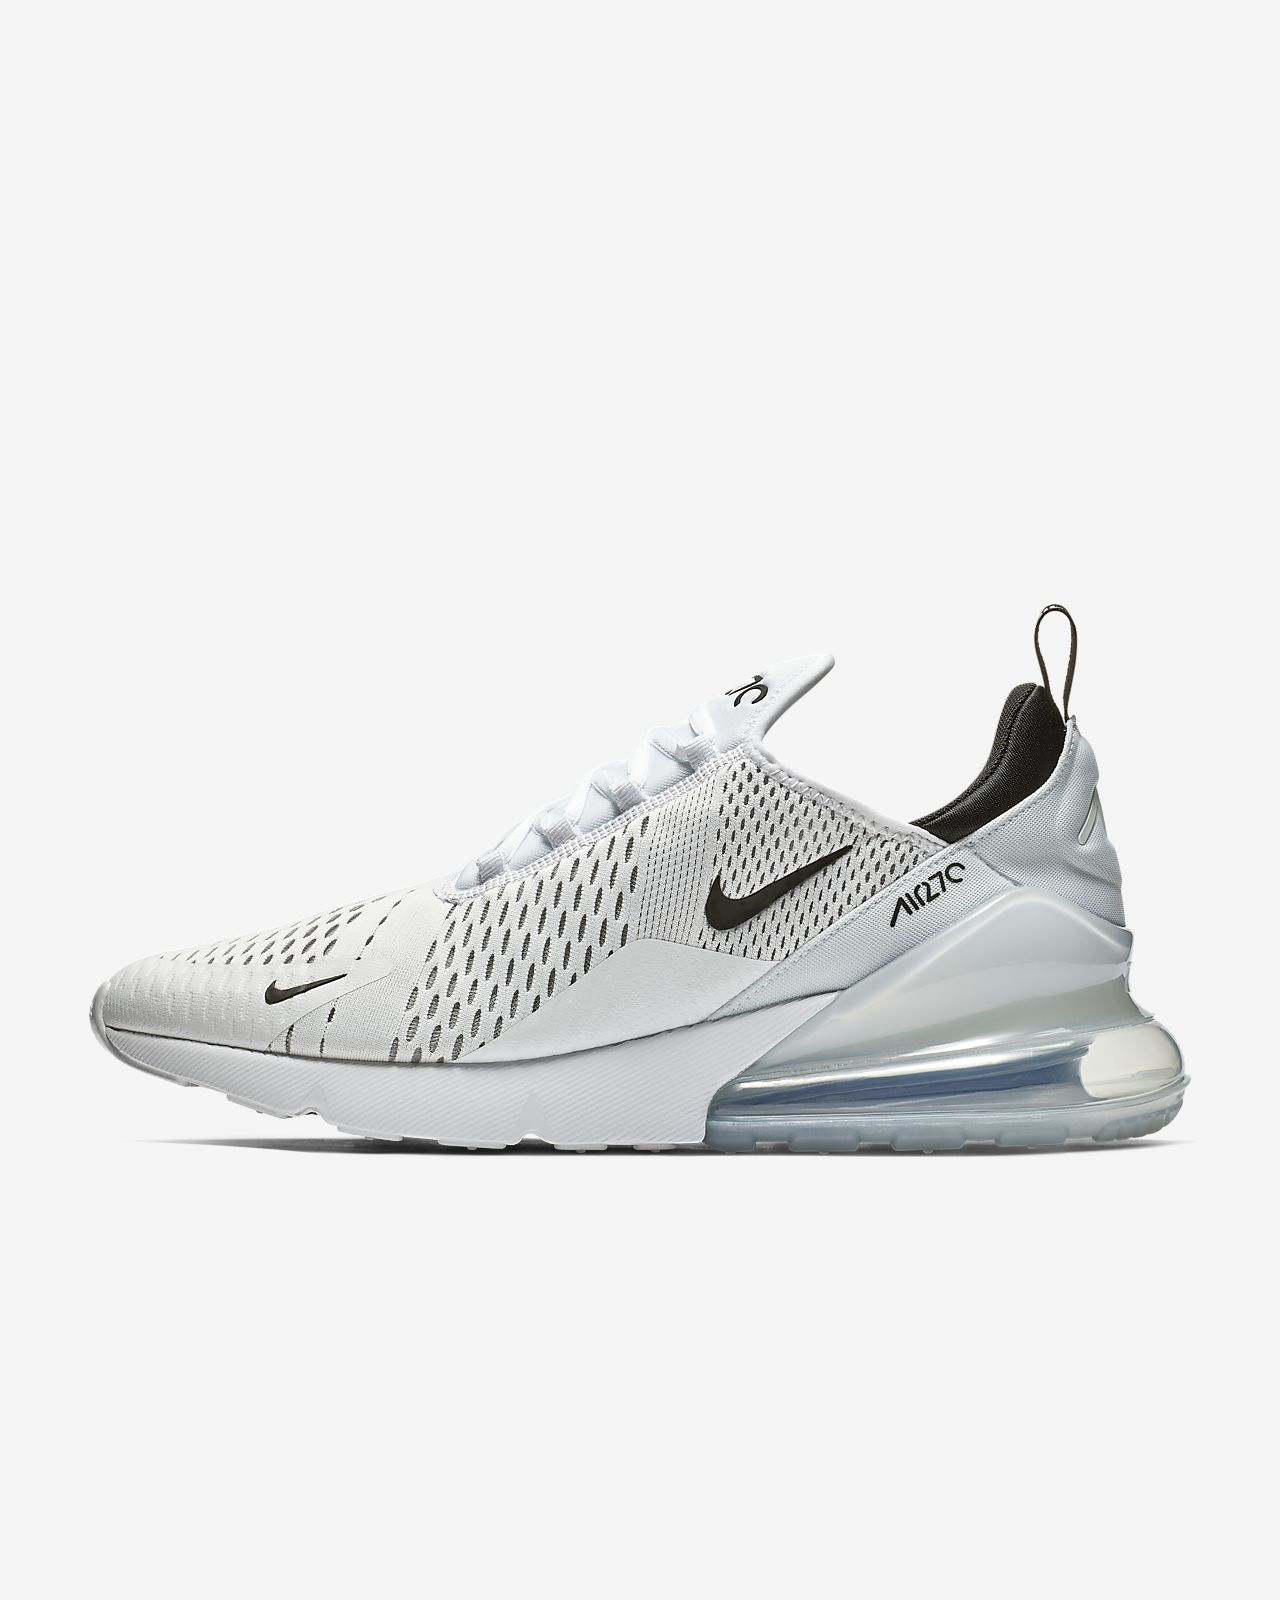 8cdd7b802ab Nike Air Max 270 Men s Shoe. Nike.com GB